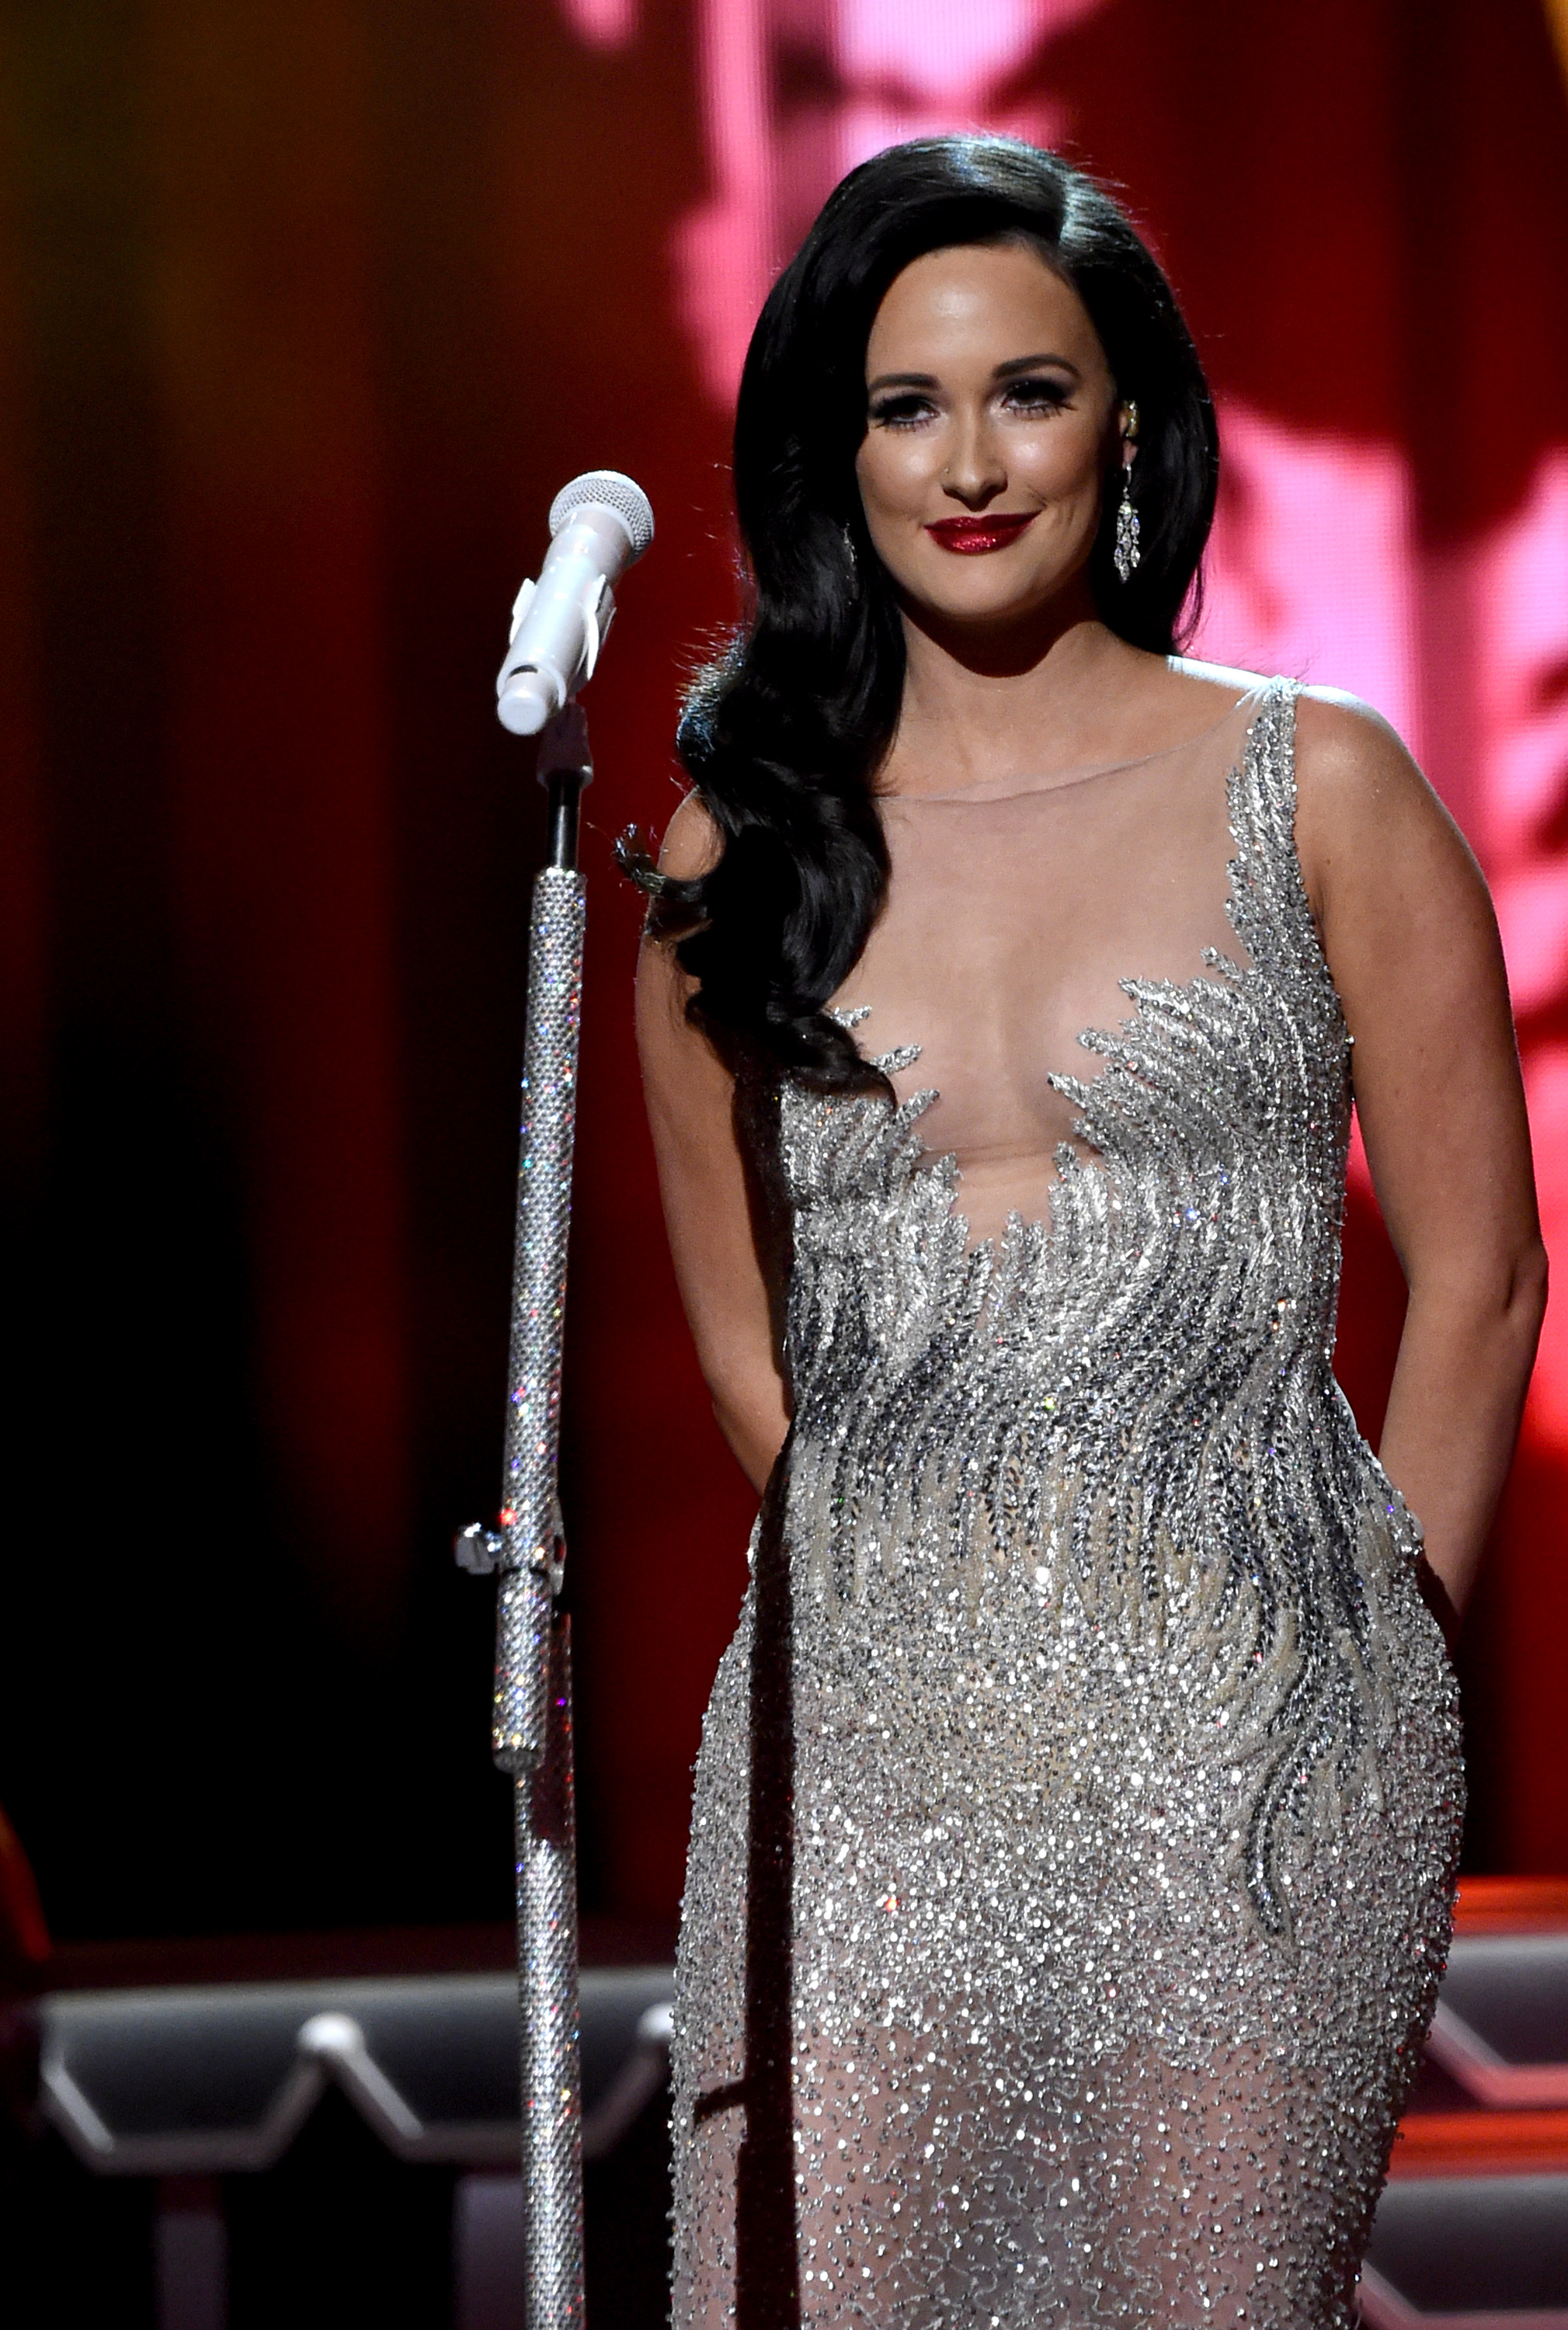 Kacey Musgraves\' \'A Very Kacey Christmas\' Albu... | News | MegaCountry